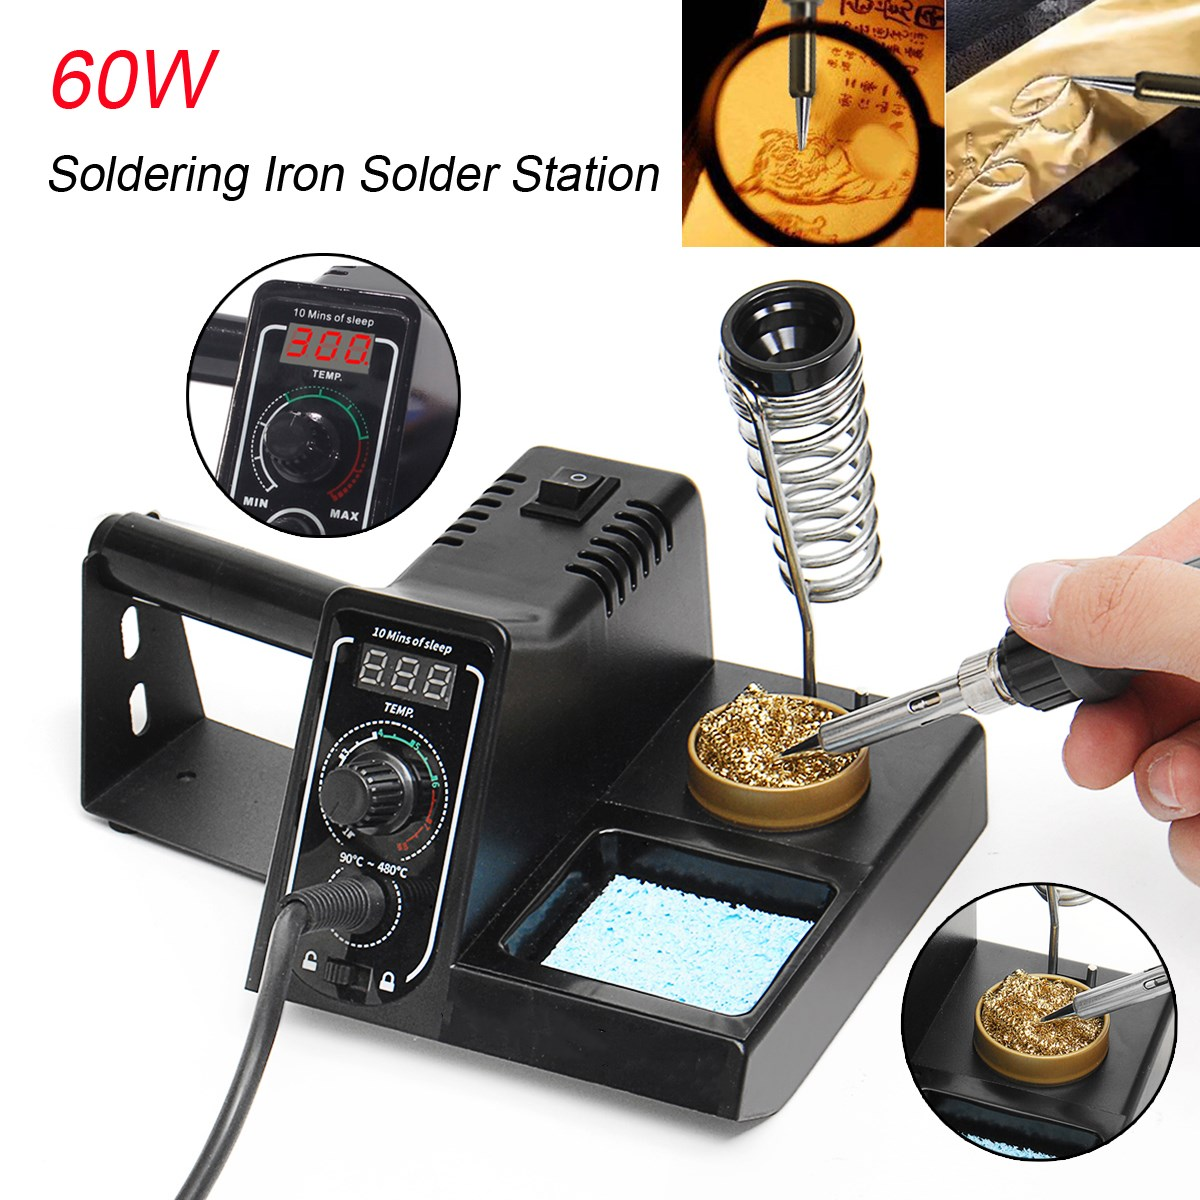 60W Solder Iron Rework Station Soldering Station Variable Temperature LED Display + Gun Stand Soldering Kit 220V esd safe 75w soldering handpiece t245a solder iron handle for di3000 intelligent soldering station